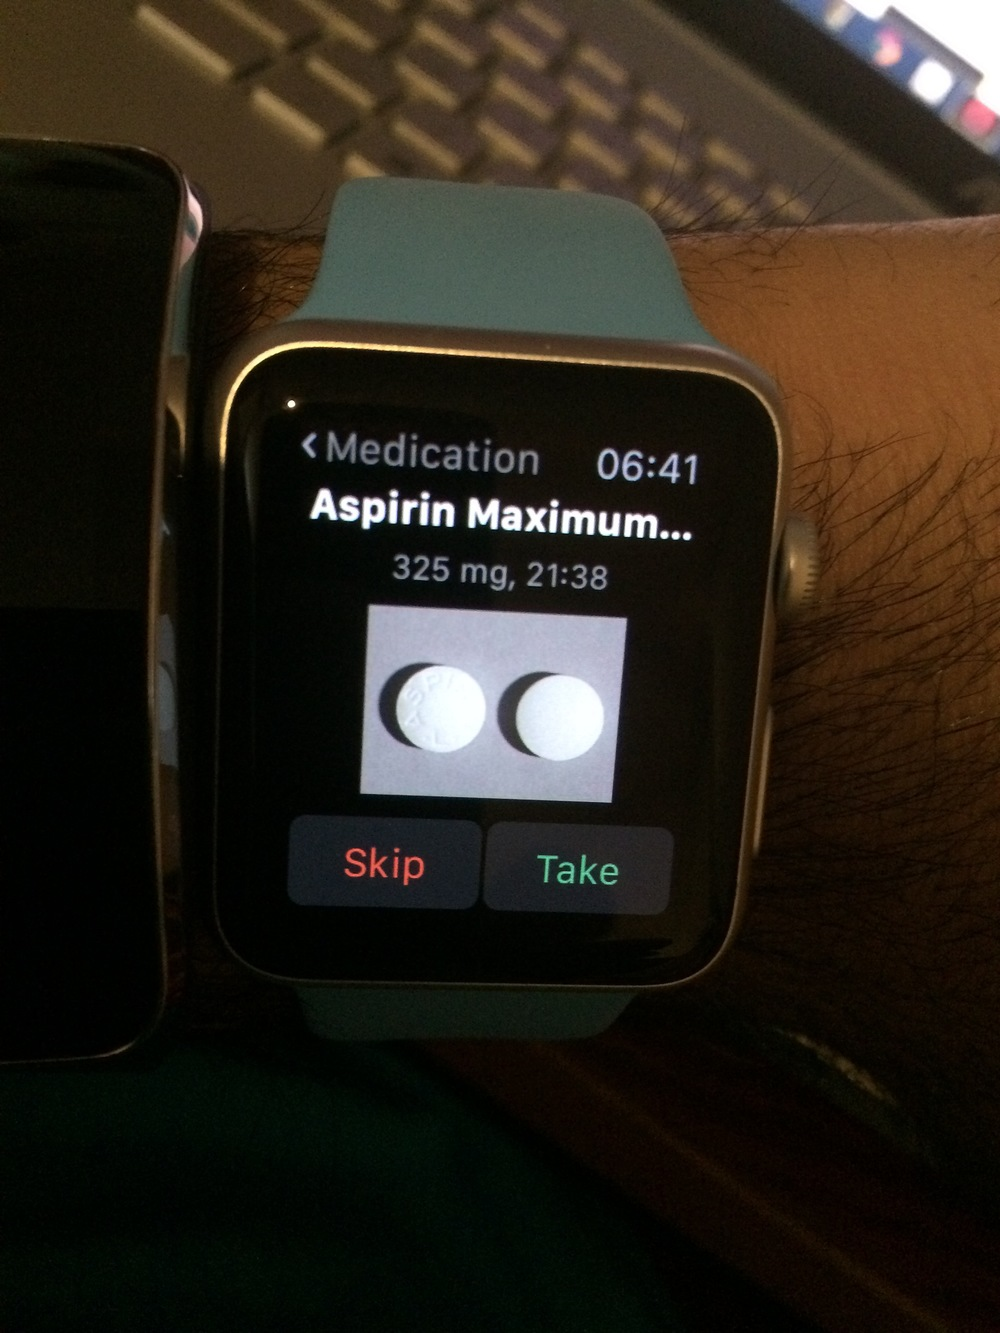 The Apple Watch Is Dead Long Live Maneesh Juneja Best 038 Free Android Applications For Electronics Electrical Engineers There Are Also A Number Of Apps On Medication Reminders Not New I Tested Medisafe Version